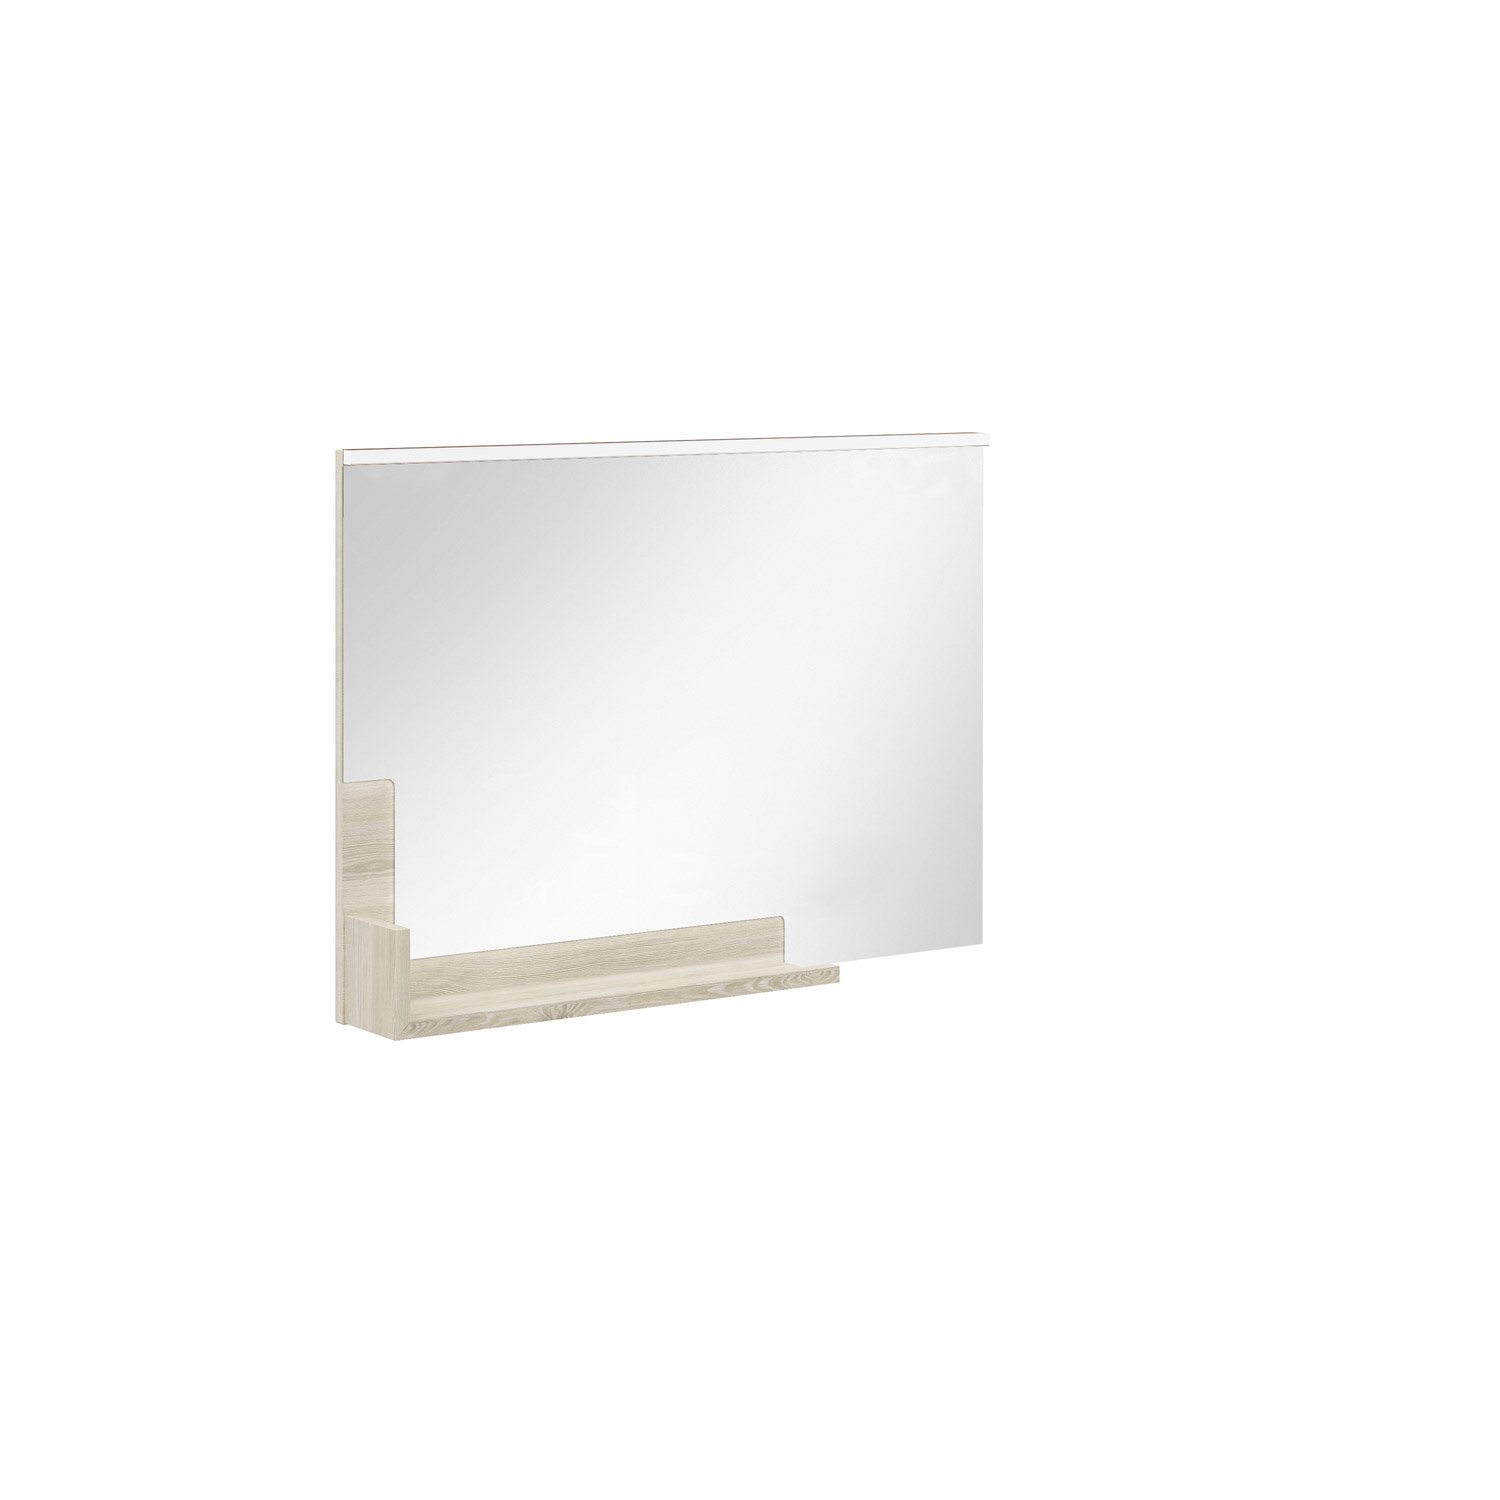 Miroir avec tablette cm eden leroy merlin for Miroir tablette